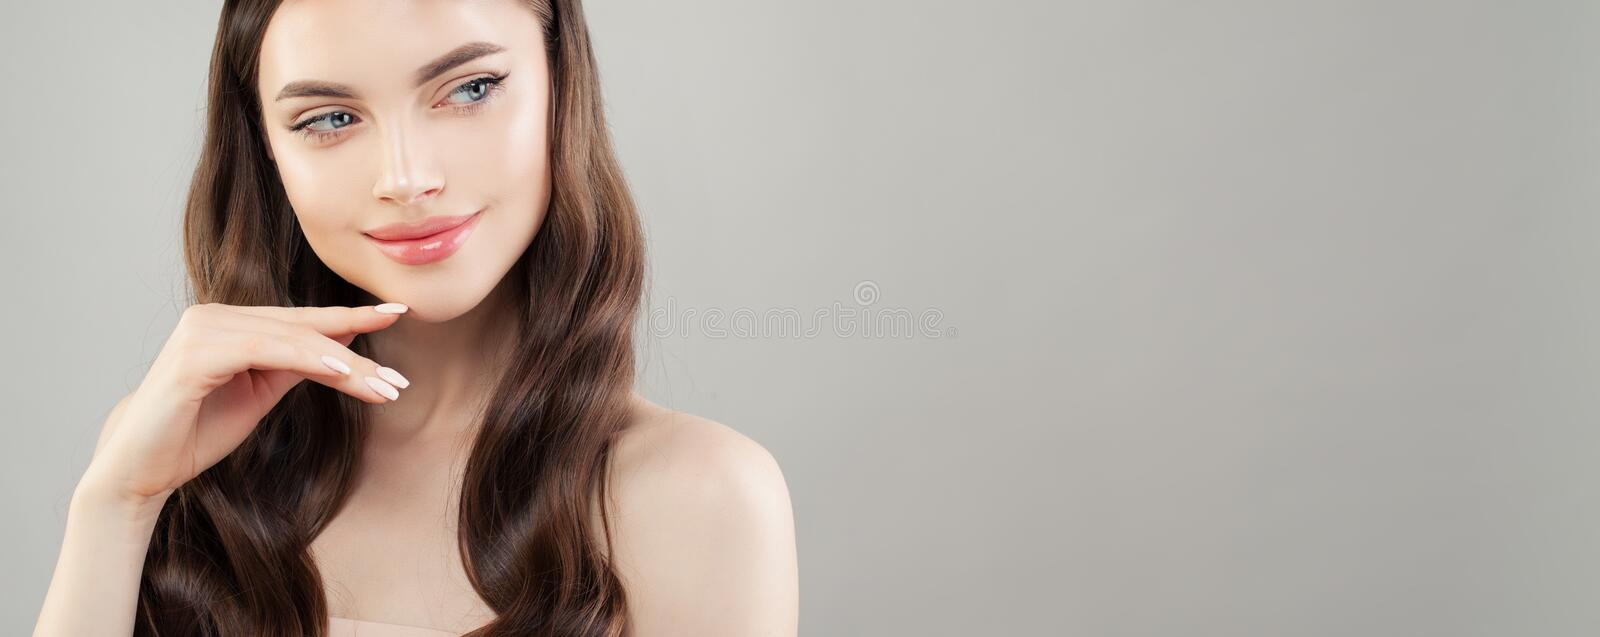 Closeup portrait of beautiful woman with clear skin smiling and looking aside on gray banner background.  royalty free stock photography